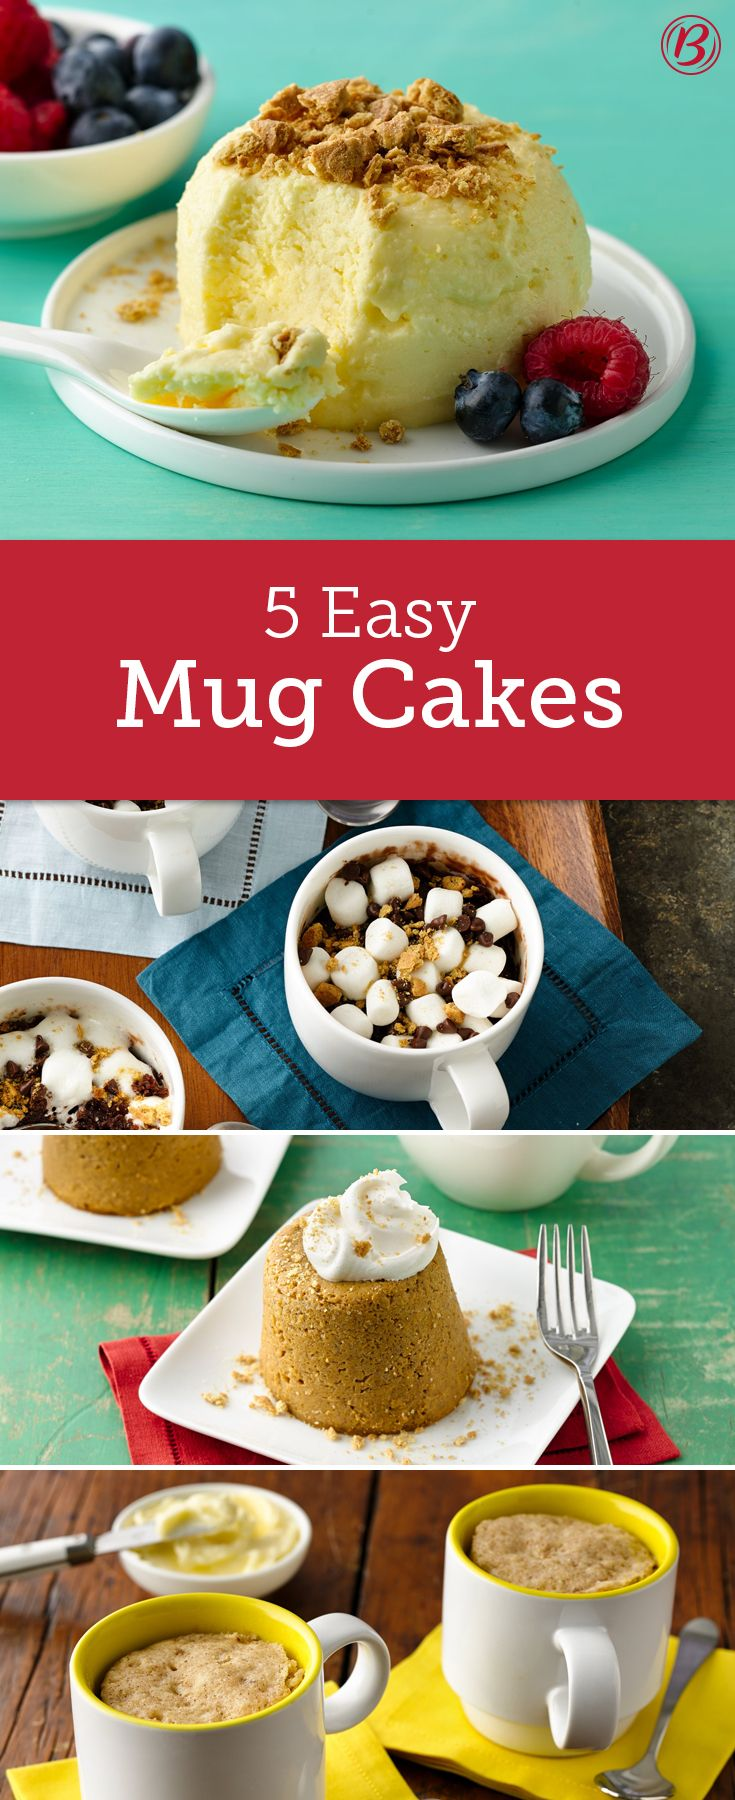 Look out coffee and hot cocoa, now you can make breakfast and dessert in your favorite mug, in minutes! From cheesecake and